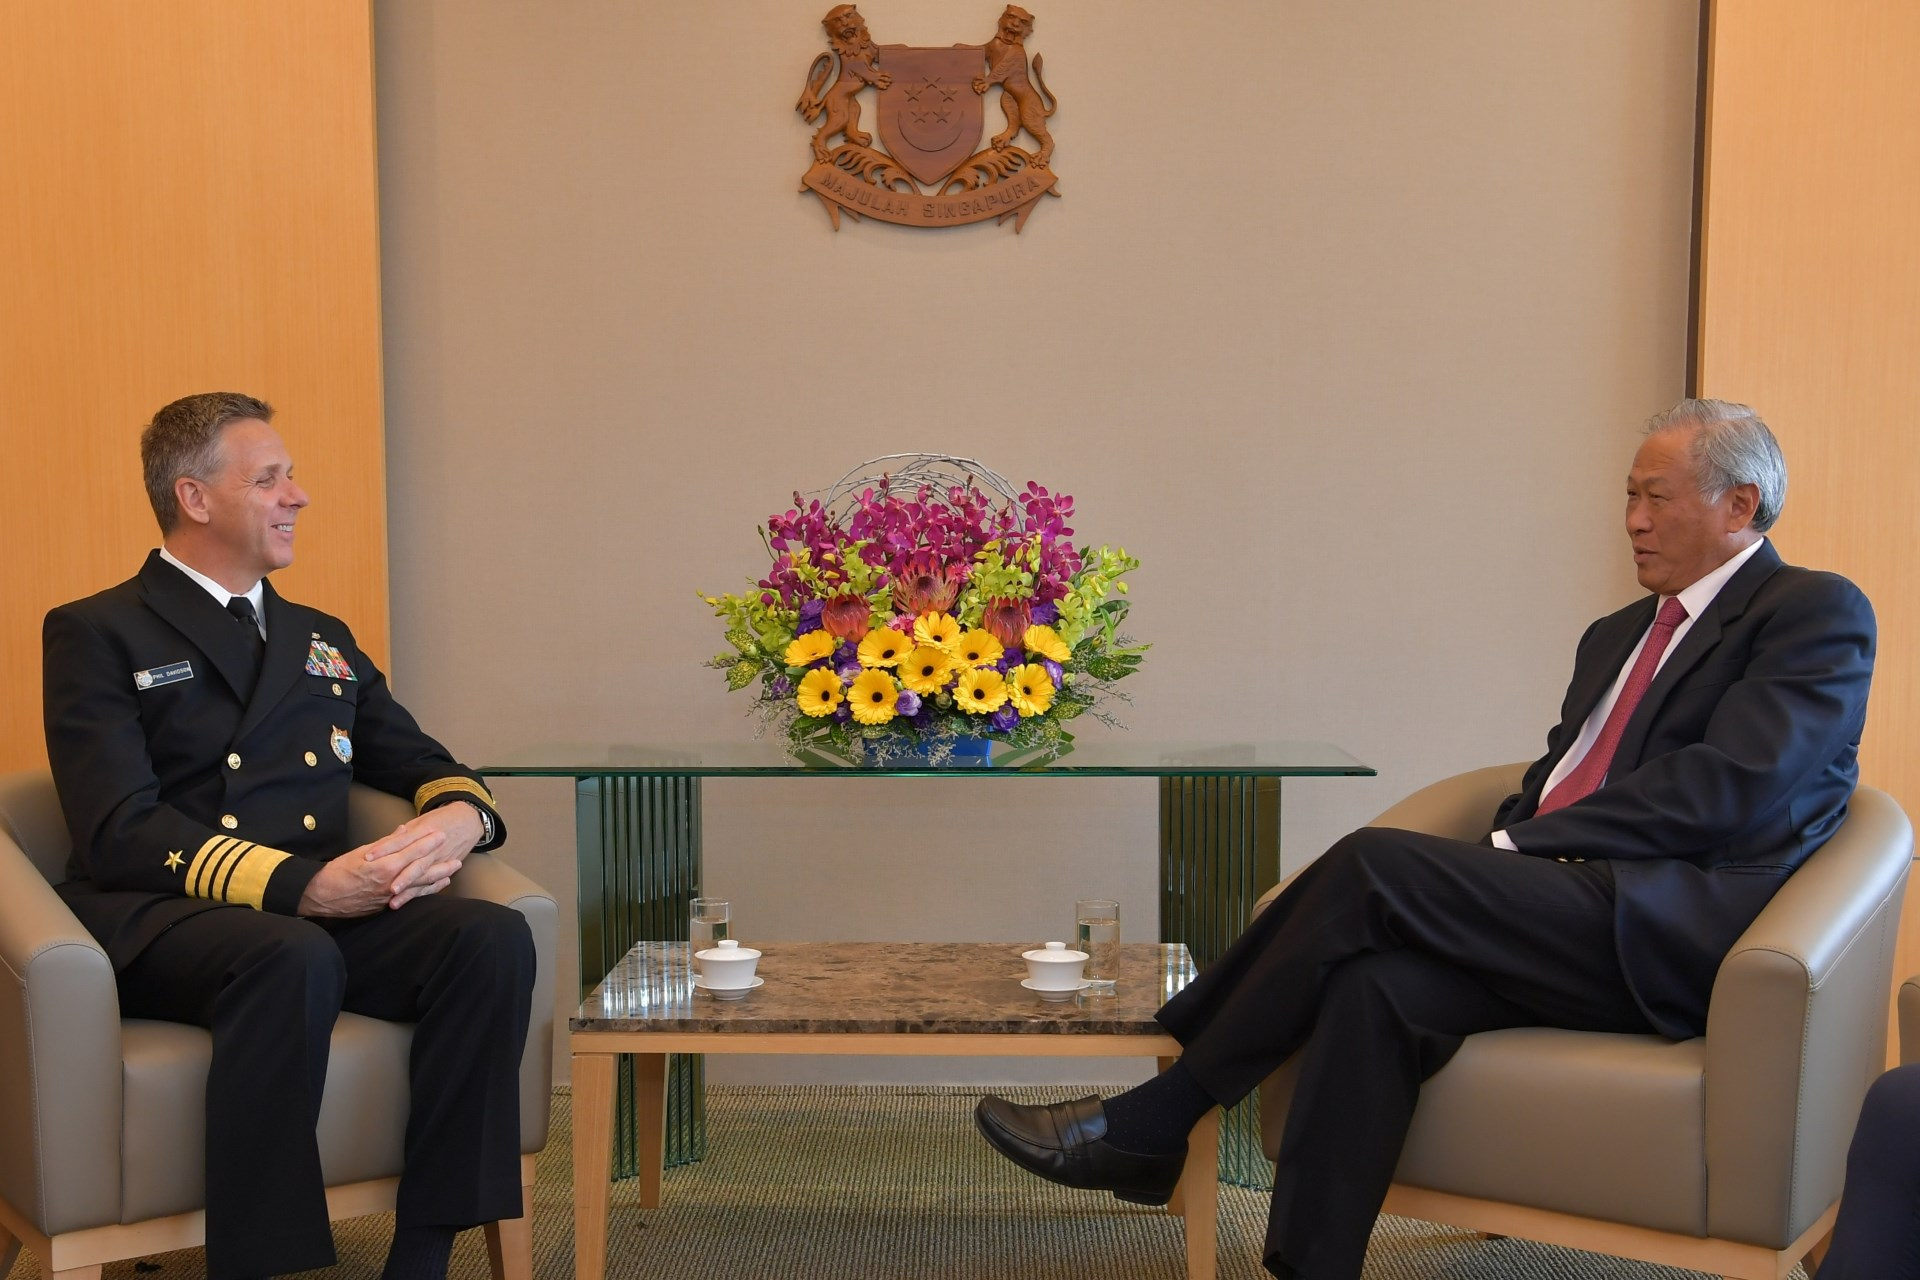 Commander of the US Indo-Pacific Command Admiral (ADM) Philip Davidson calling on Minister for Defence Dr Ng Eng Hen this morning at the Ministry of Defence (MINDEF).